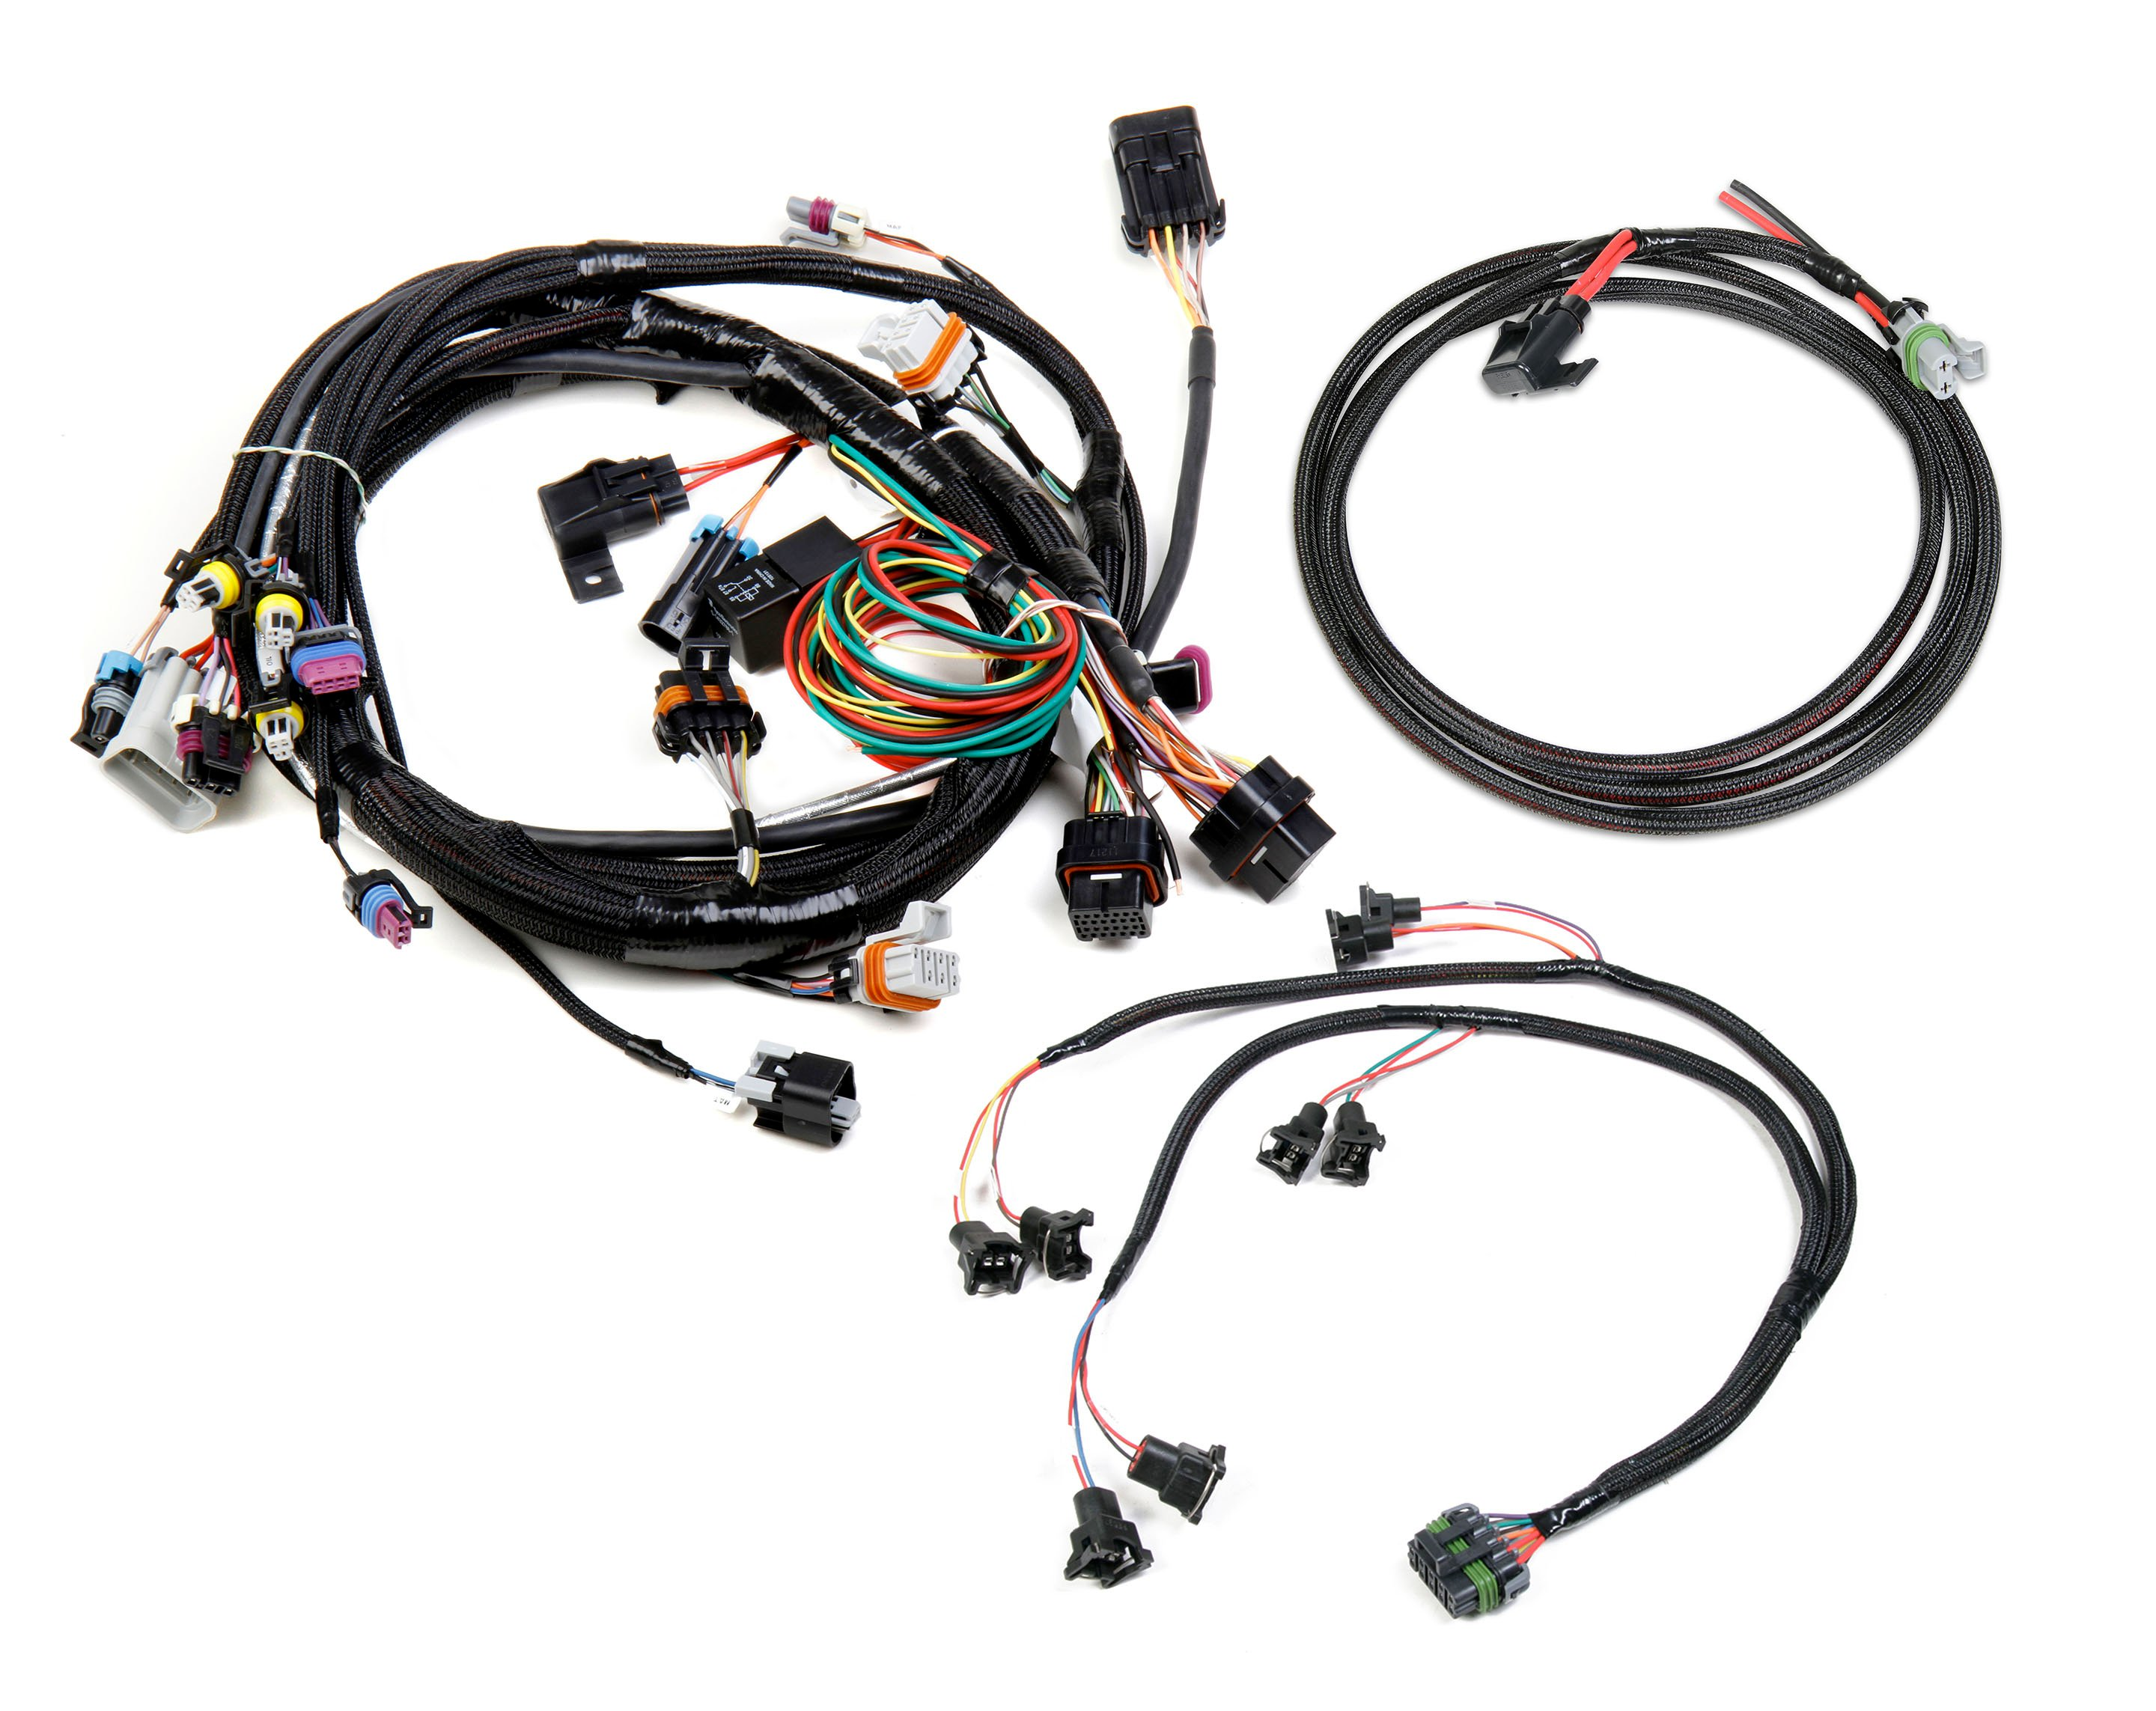 Surprising Holley Efi 558 500 Gm Ls 24X Efi Harness Kit Wiring Cloud Oideiuggs Outletorg